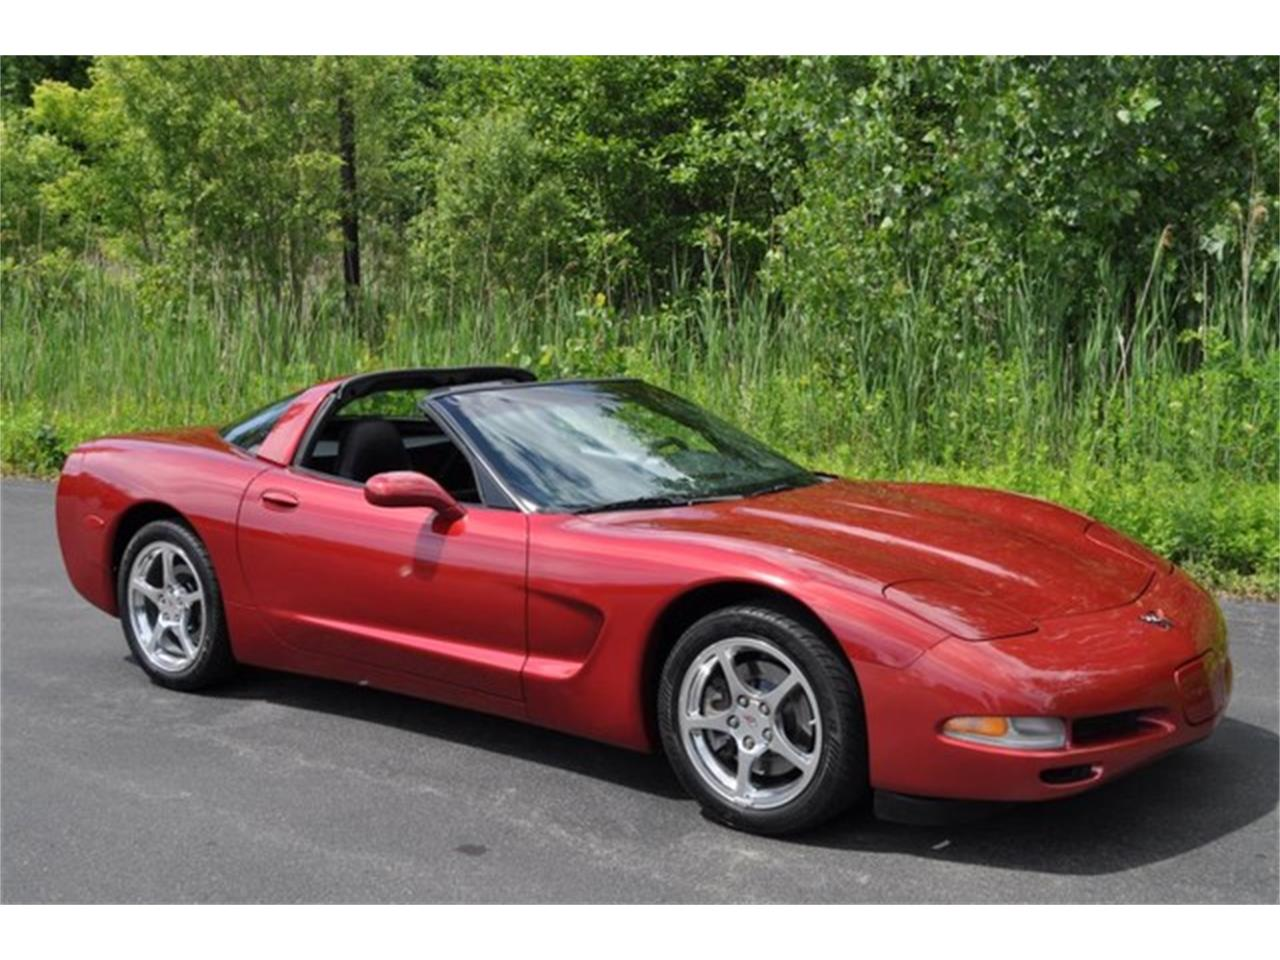 Large Picture of 2002 Corvette located in Clifton Park New York - $15,999.00 - QAF8